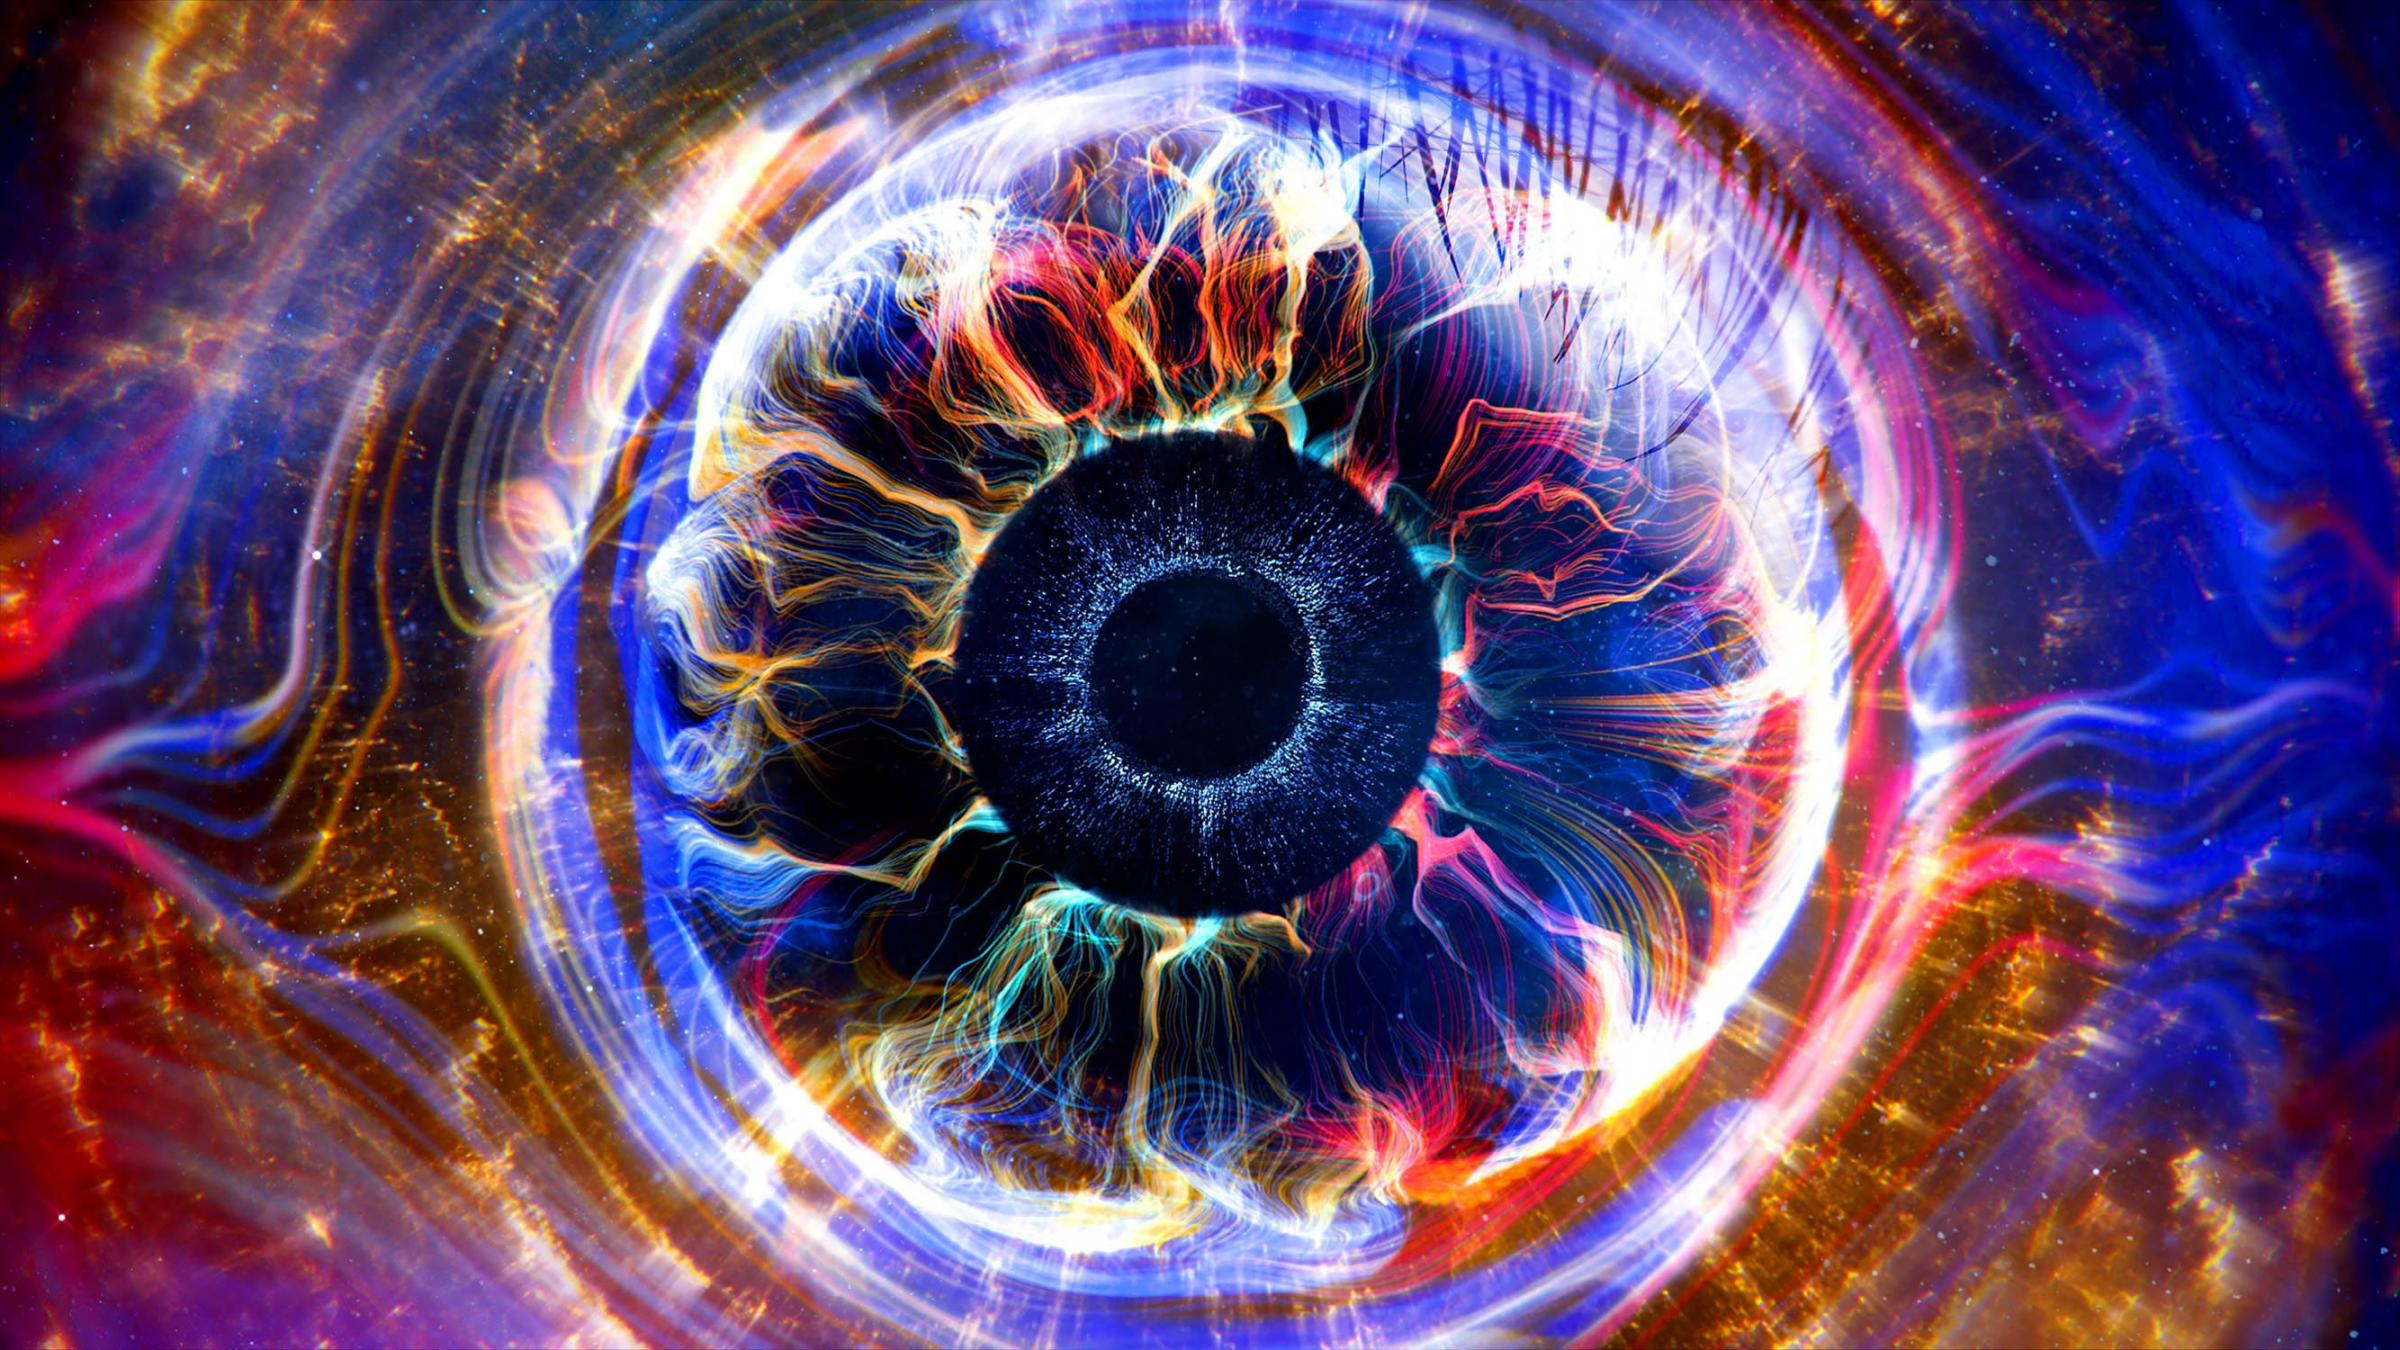 The new Big Brother Eye